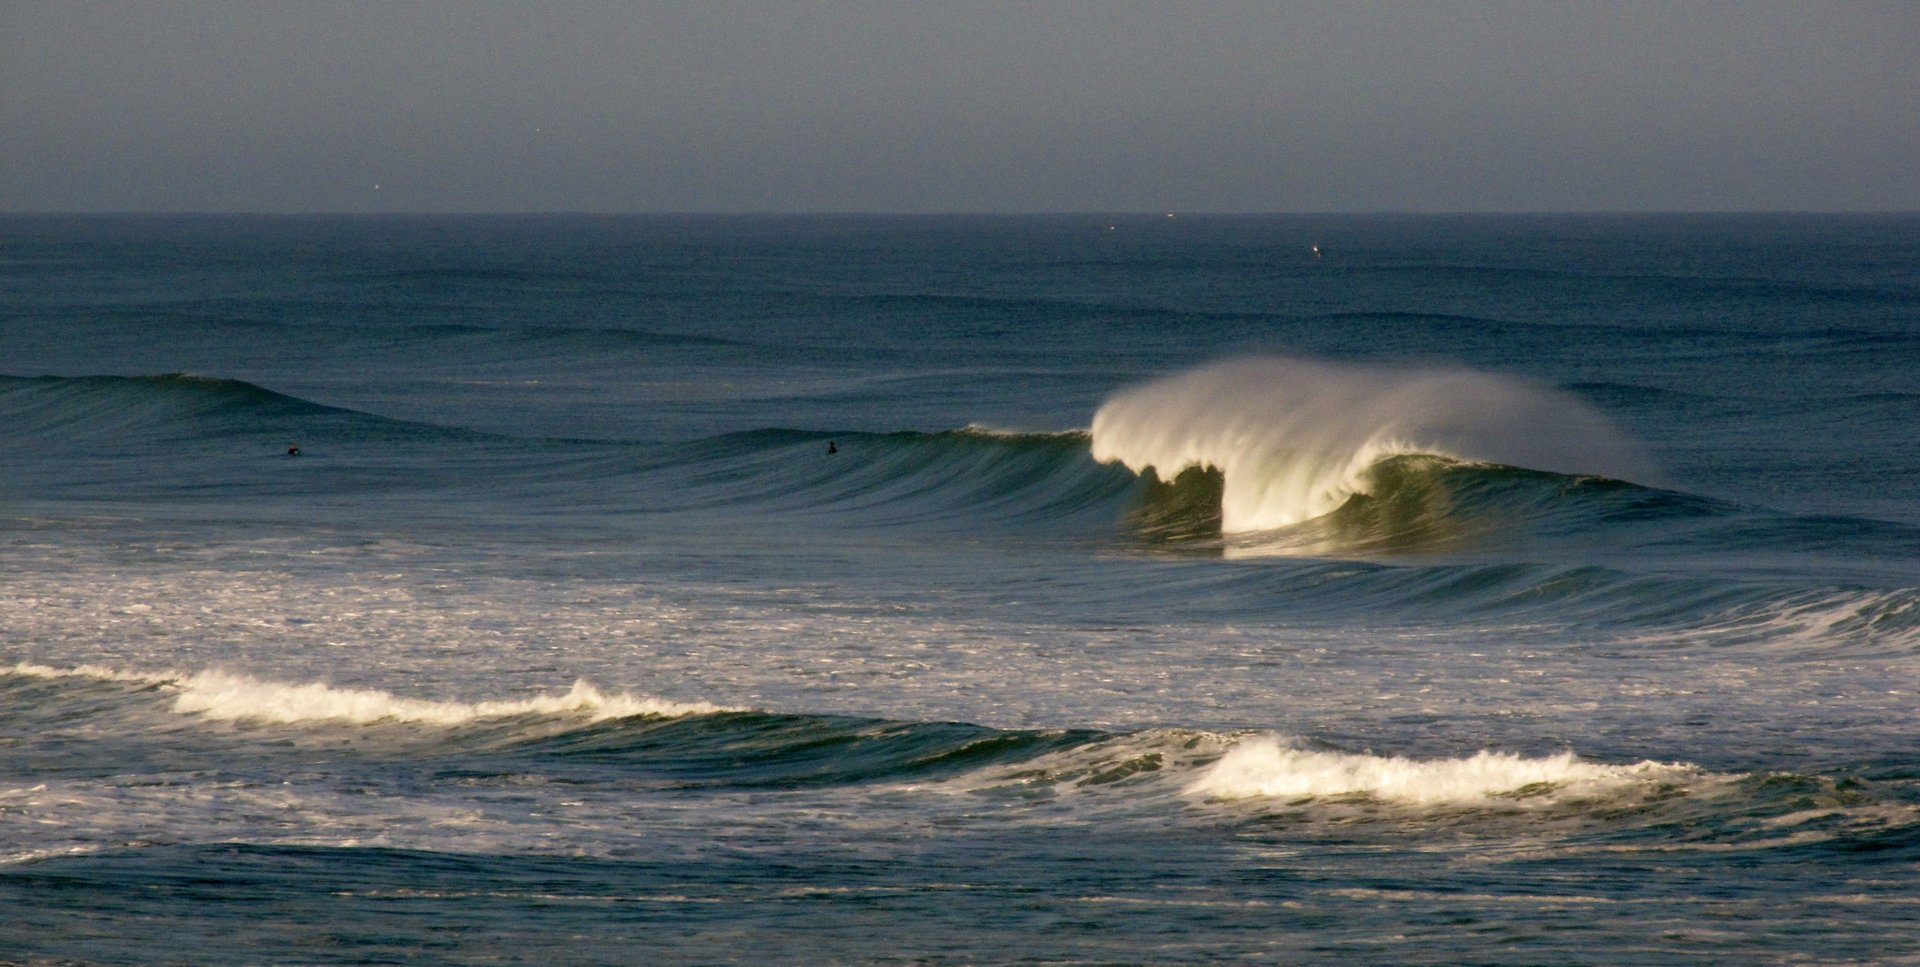 Mat's photo of Biscarrosse-Plage